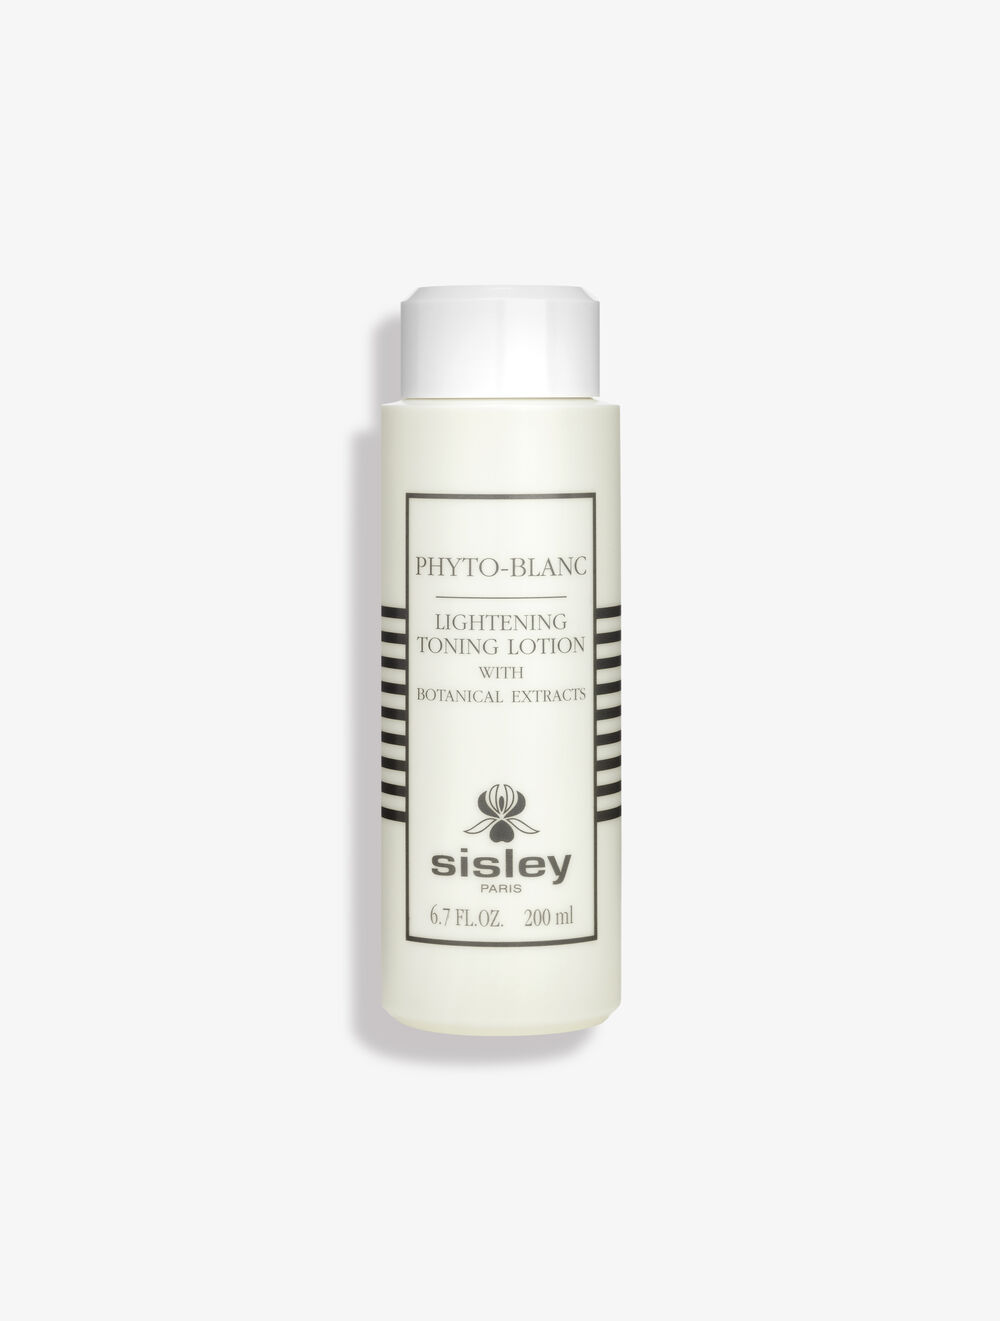 Phyto-Blanc Lightening Toning Lotion